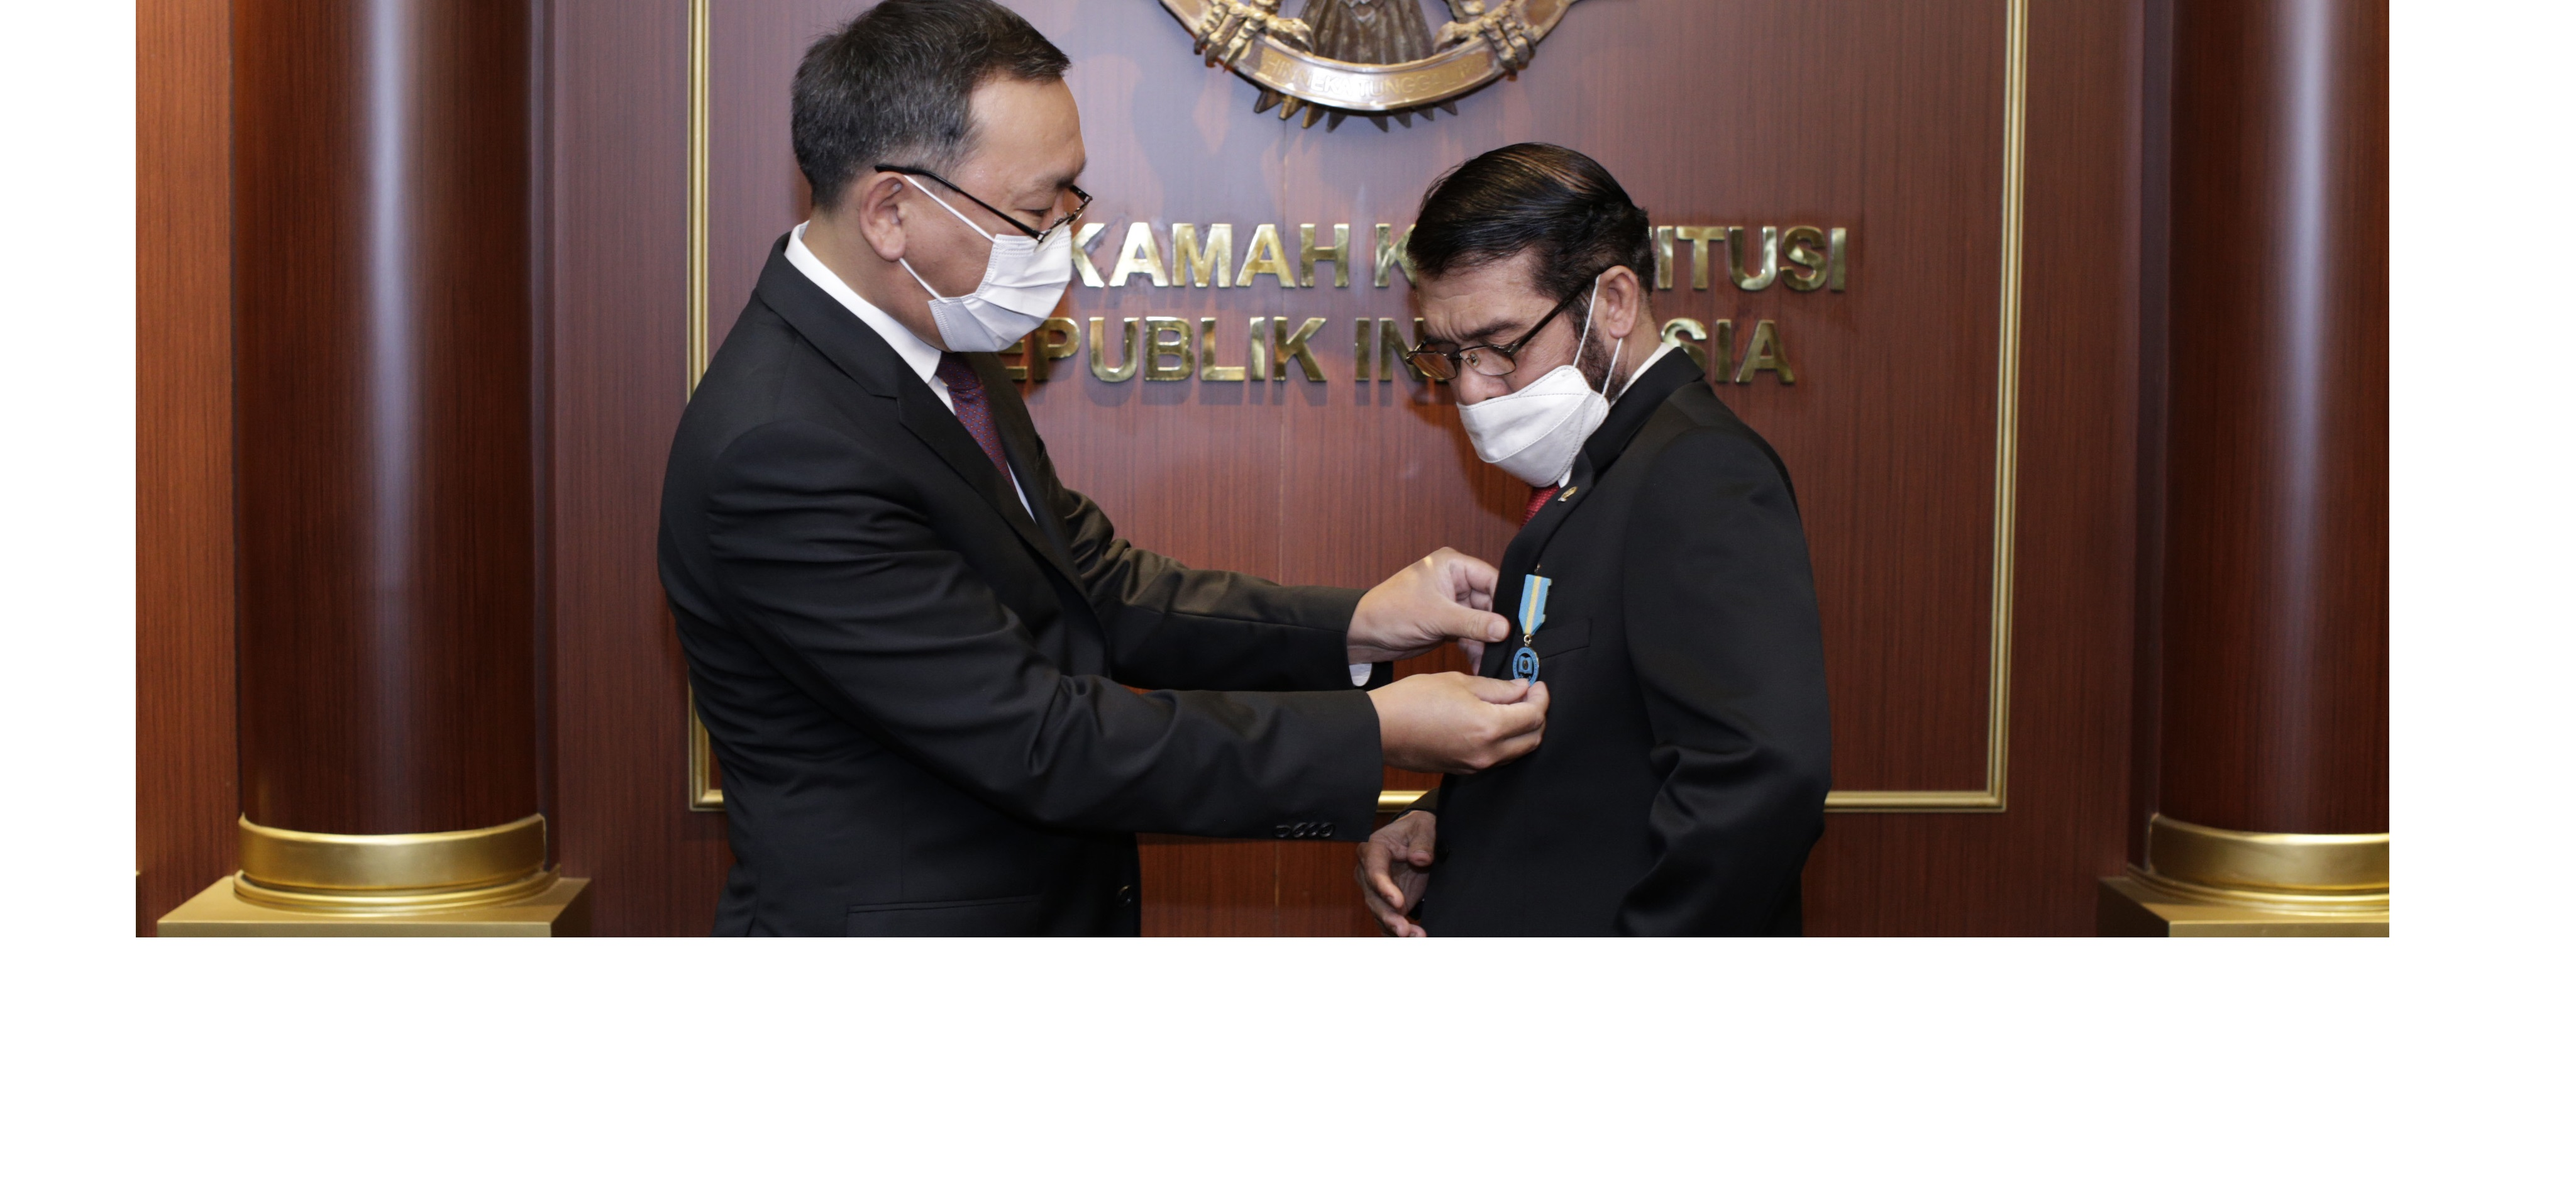 The Constitutional Court of the Republic of Indonesia Receives Commemorative Medal on 25th Anniversary of Kazakhstan's Constitution